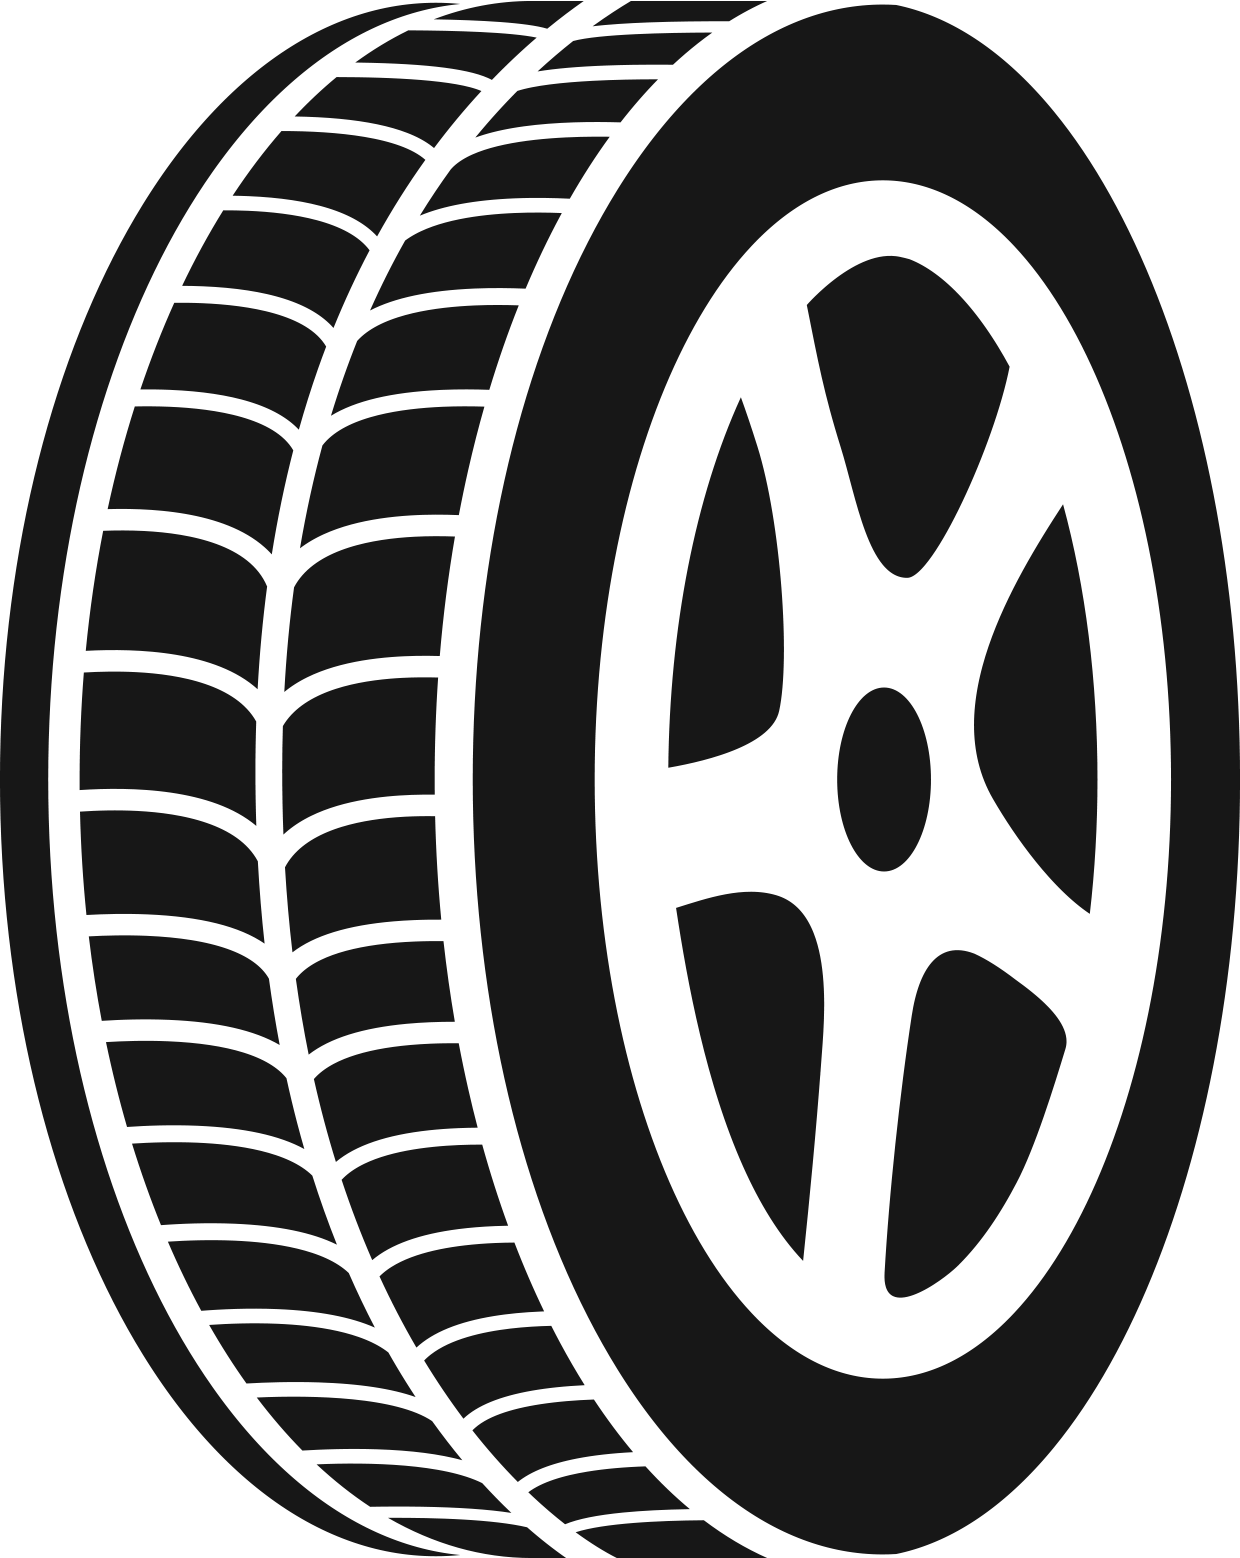 tire icon clipart wheel repair tyre transparent truck tires omni united tips opon icons wymiana logos tsi 4motion volkswagen golf